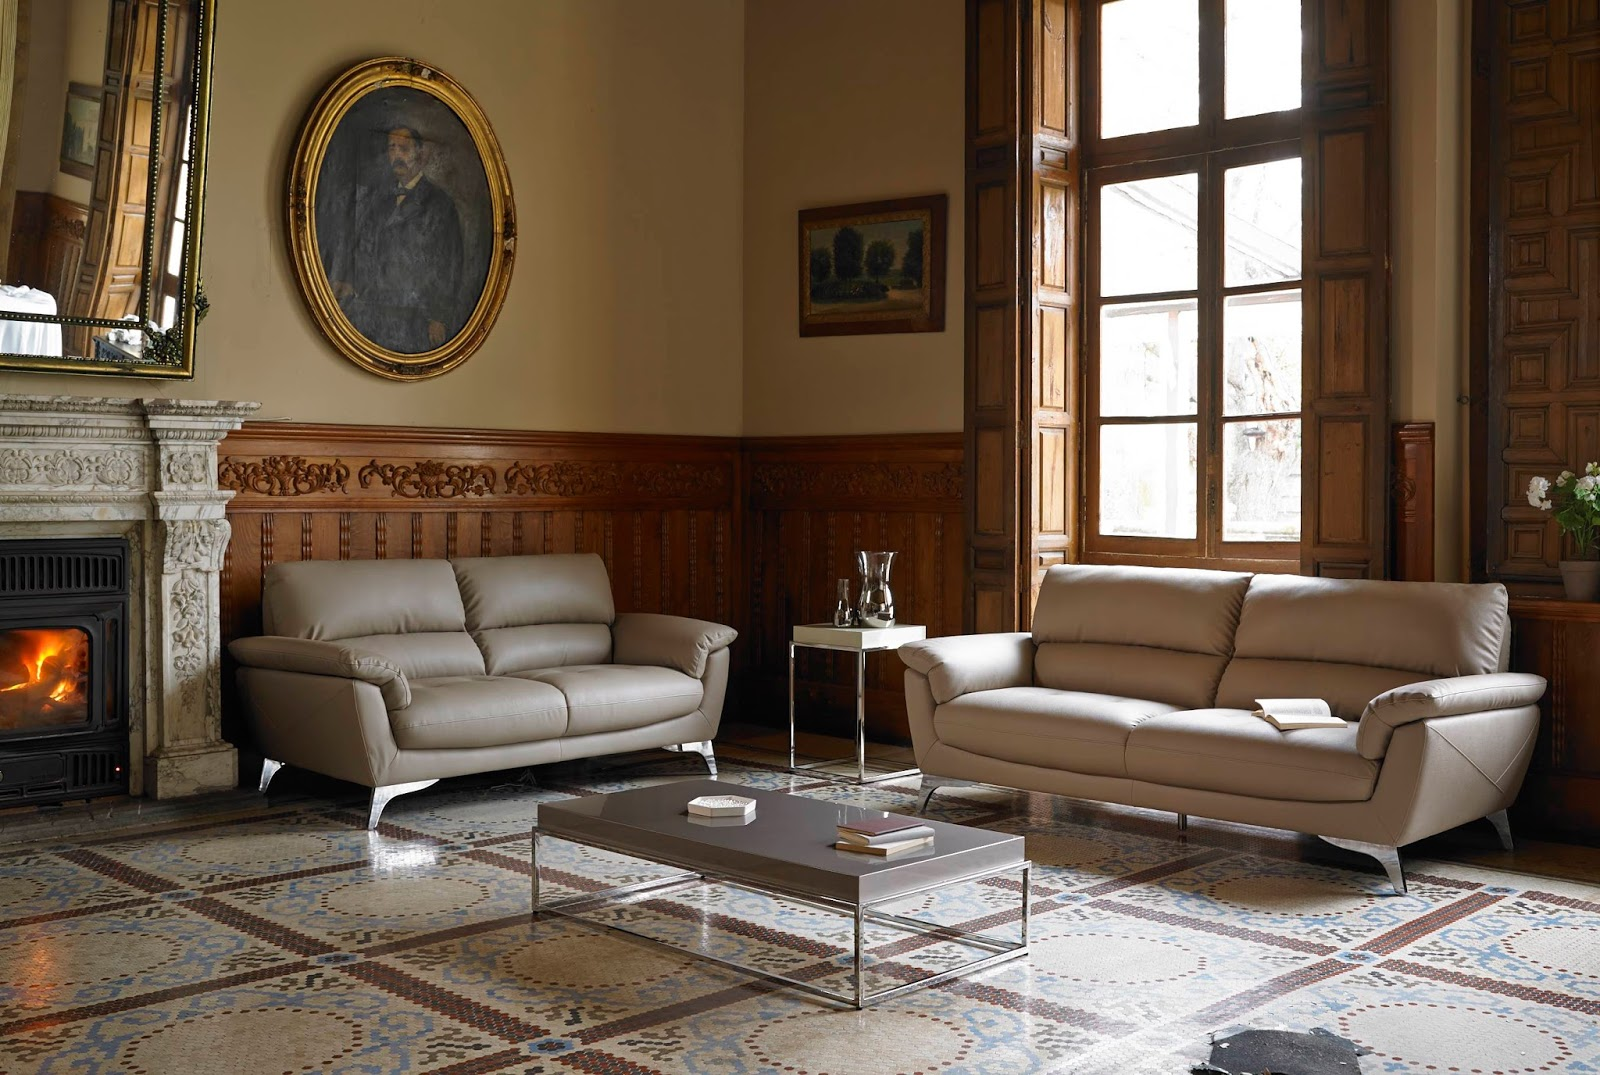 El blog de demarques muebles de dise o italiano para for Casas de sofas en valencia